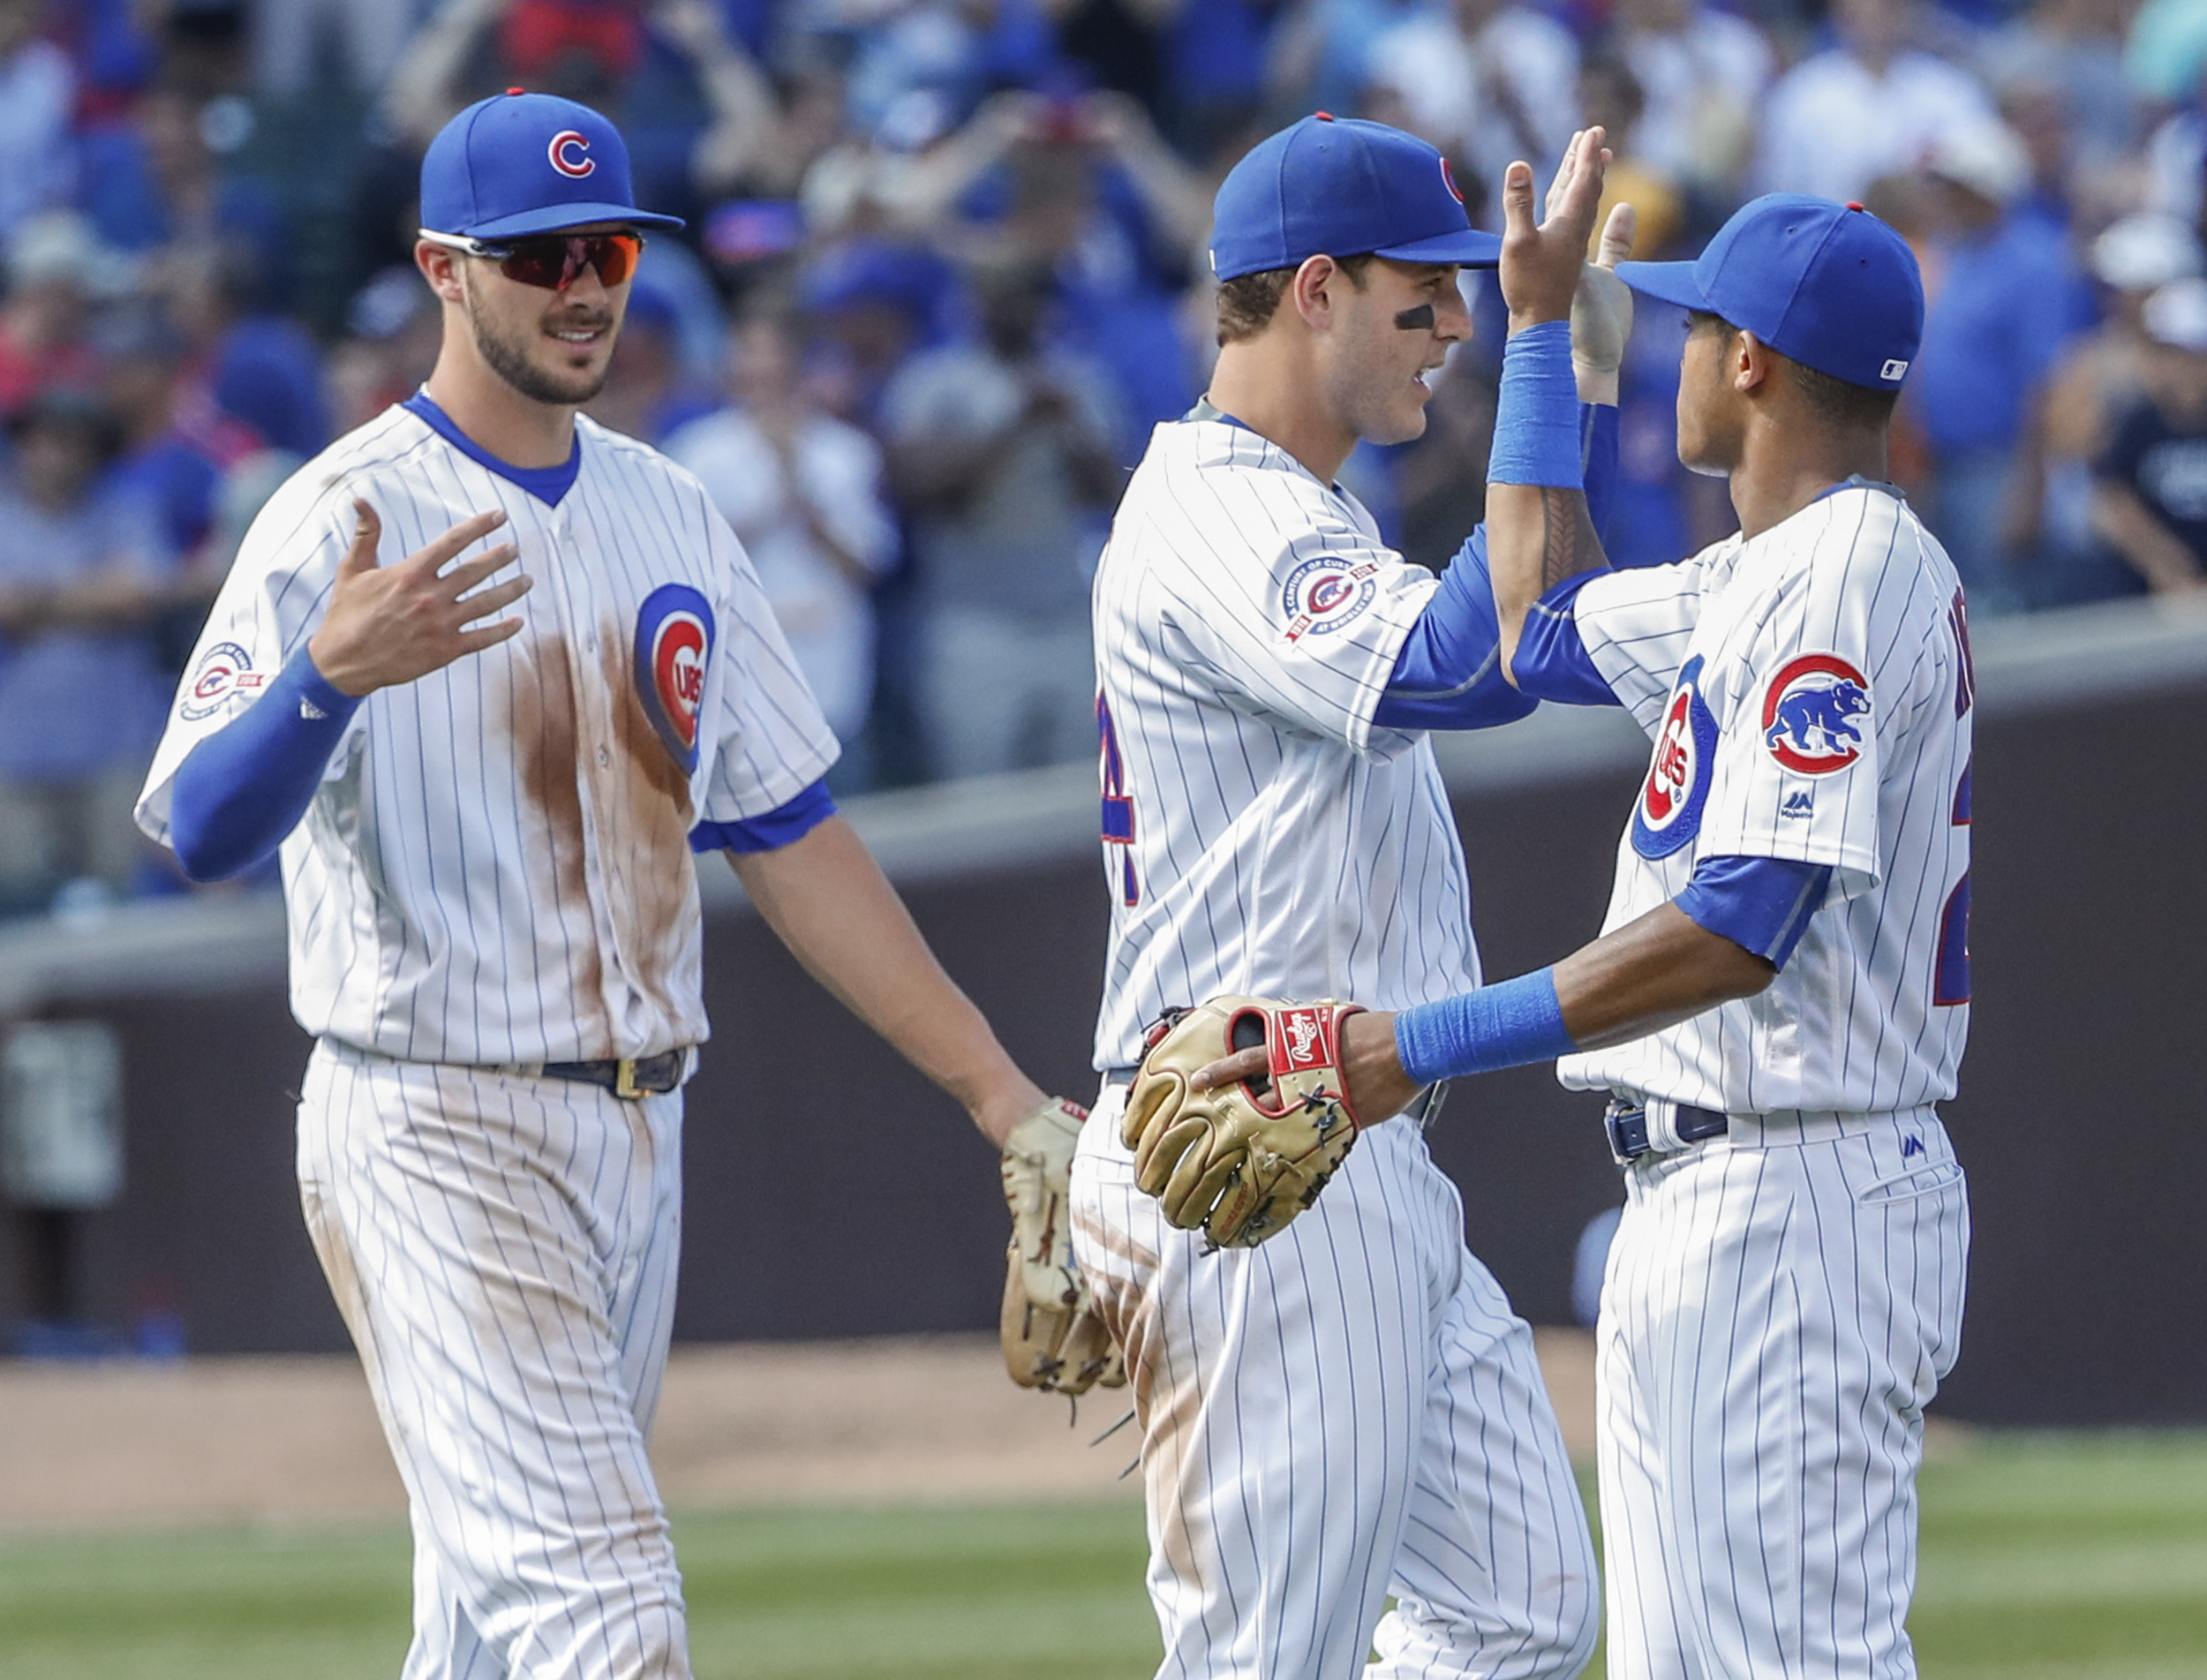 Chicago Cubs' Addison Russell, right, celebrates with Anthony Rizzo, center, and Kris Bryant, left, after the team's 4-0 win against the Milwaukee Brewers in a baseball game, Tuesday, Aug. 16, 2016, at Wrigley Field in Chicago. (AP Photo/Kamil Krzaczynski